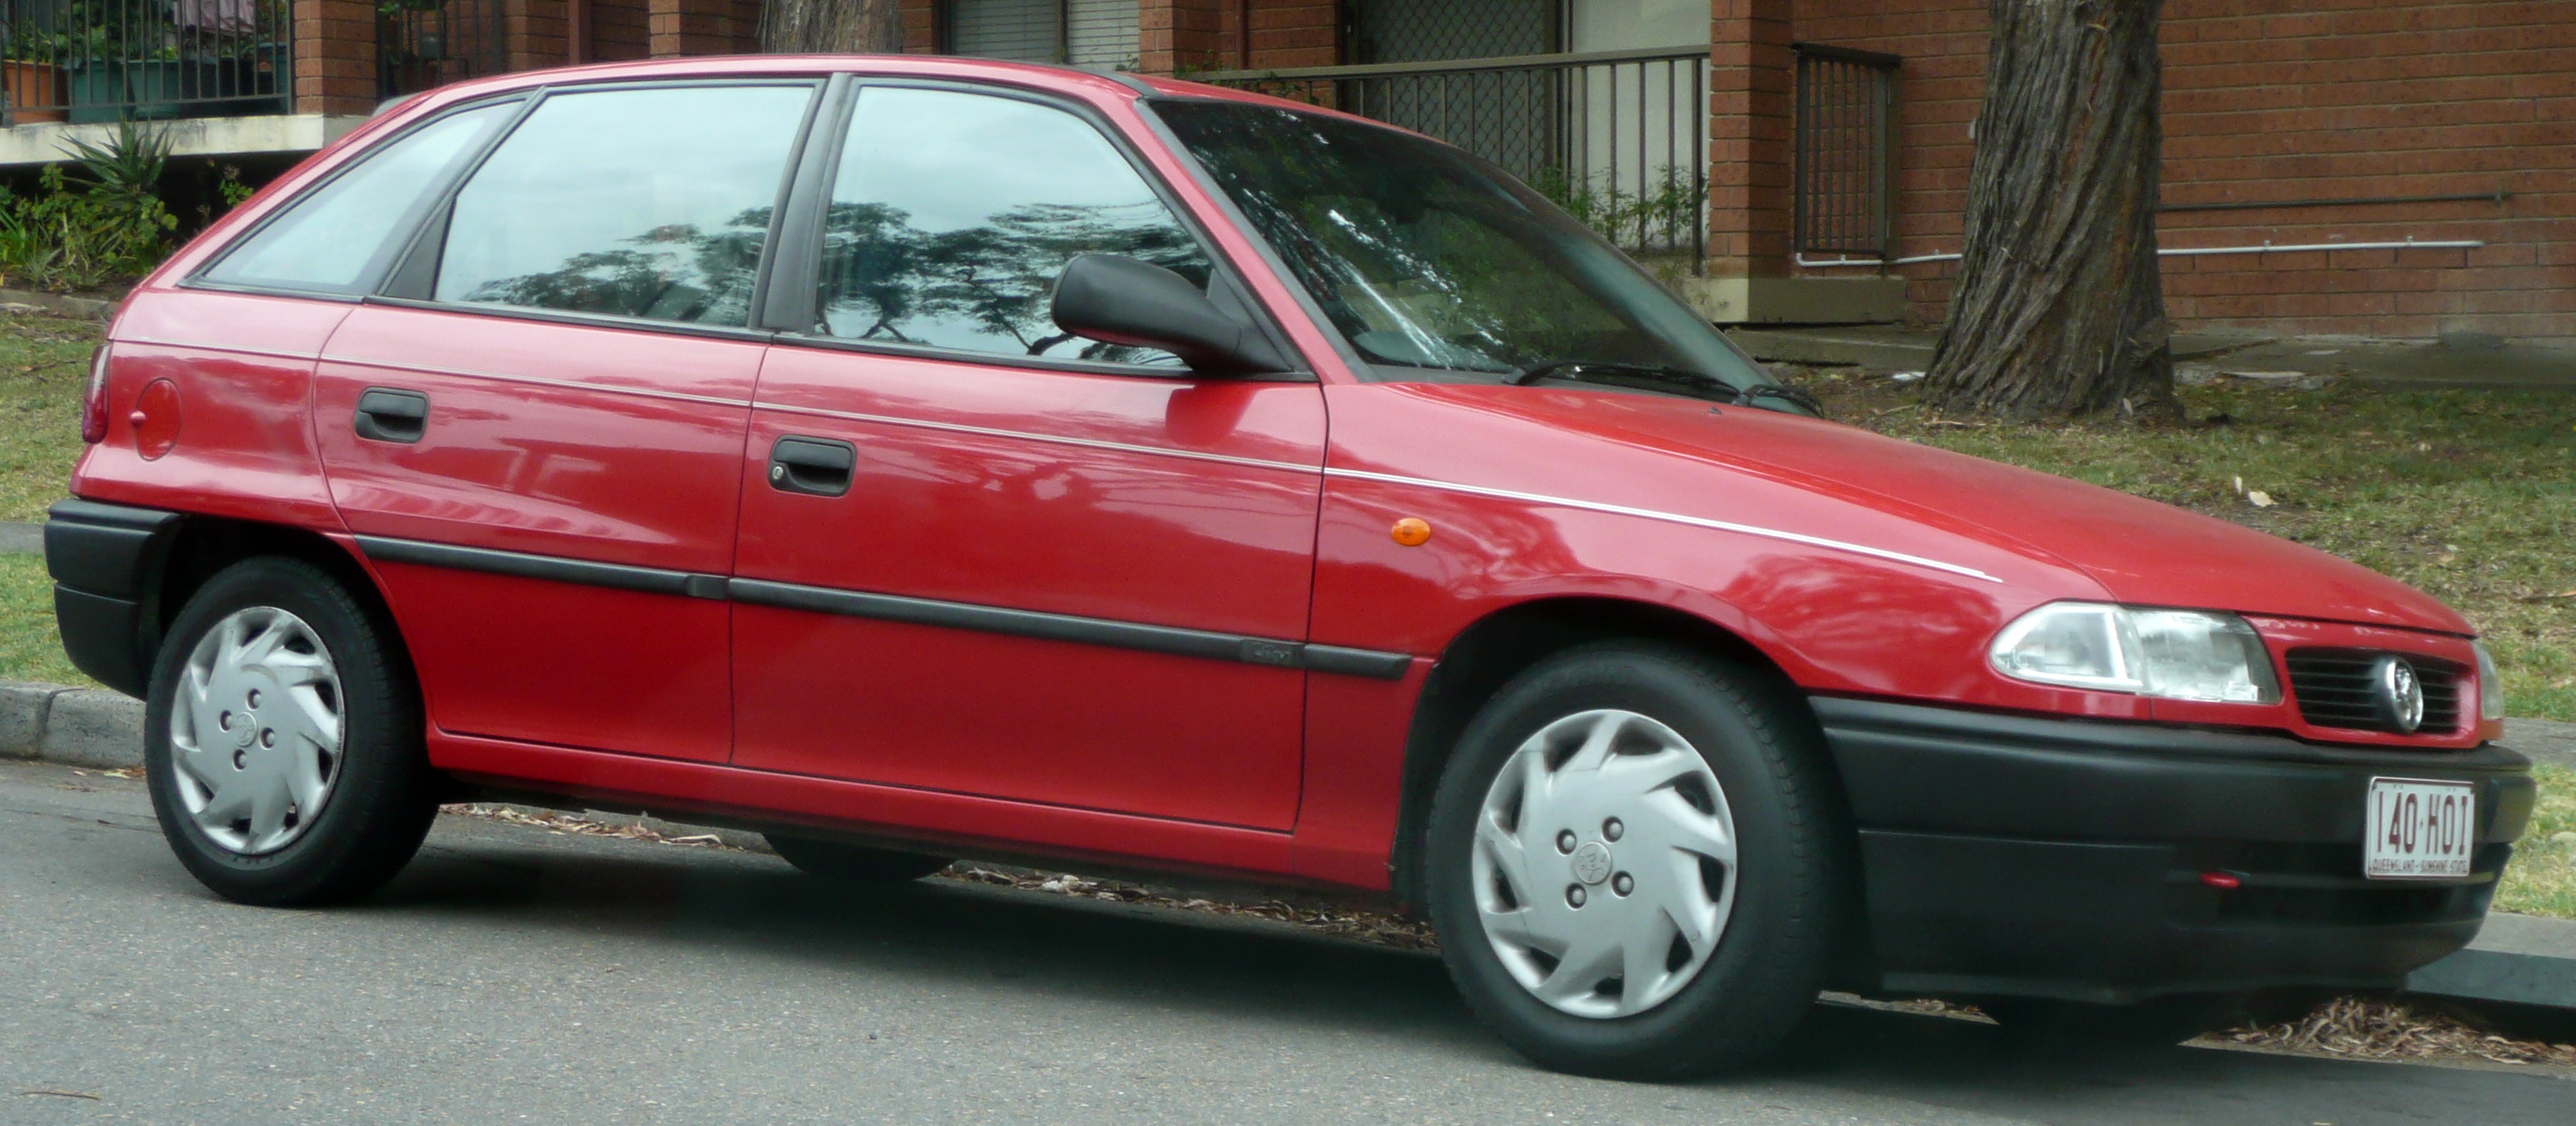 Opel Vectra A 1988 - 1995 Hatchback 5 door #5